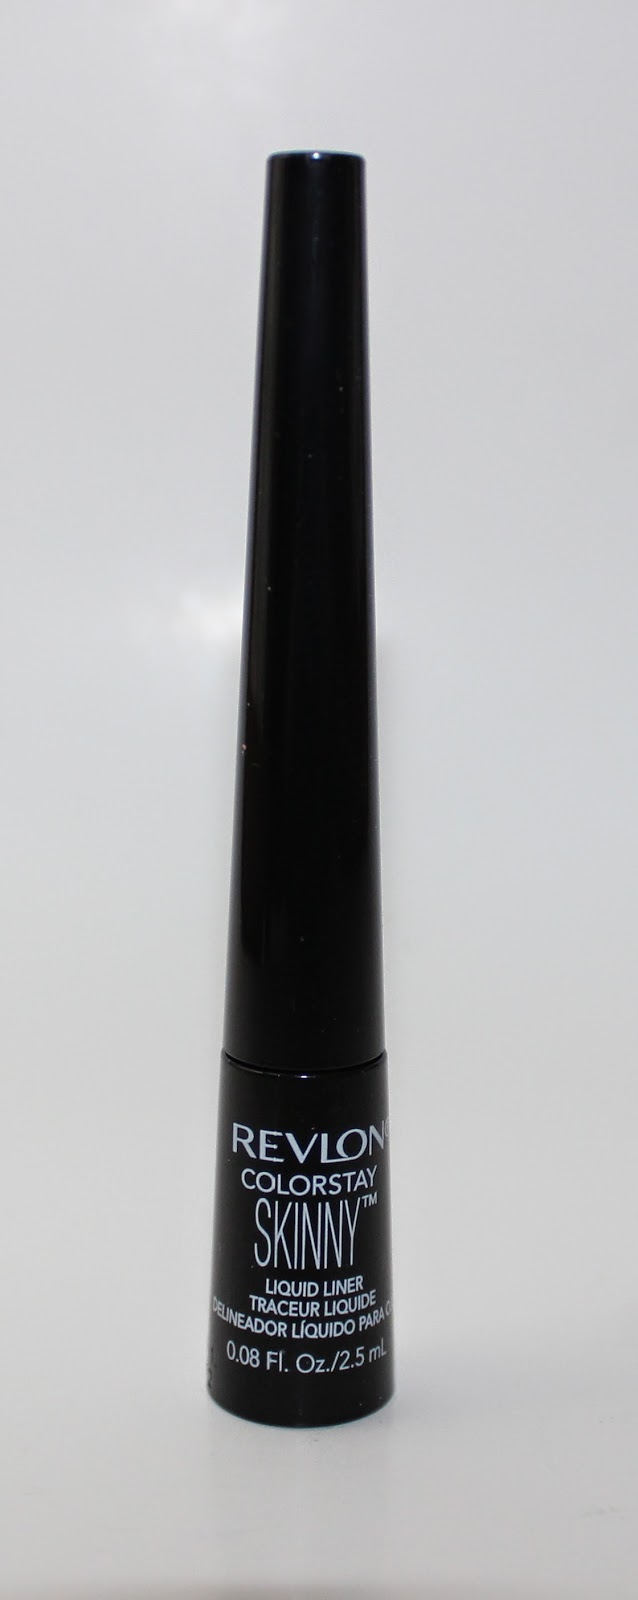 Revlon ColorStay Skinny Liquid Liner in Black Out